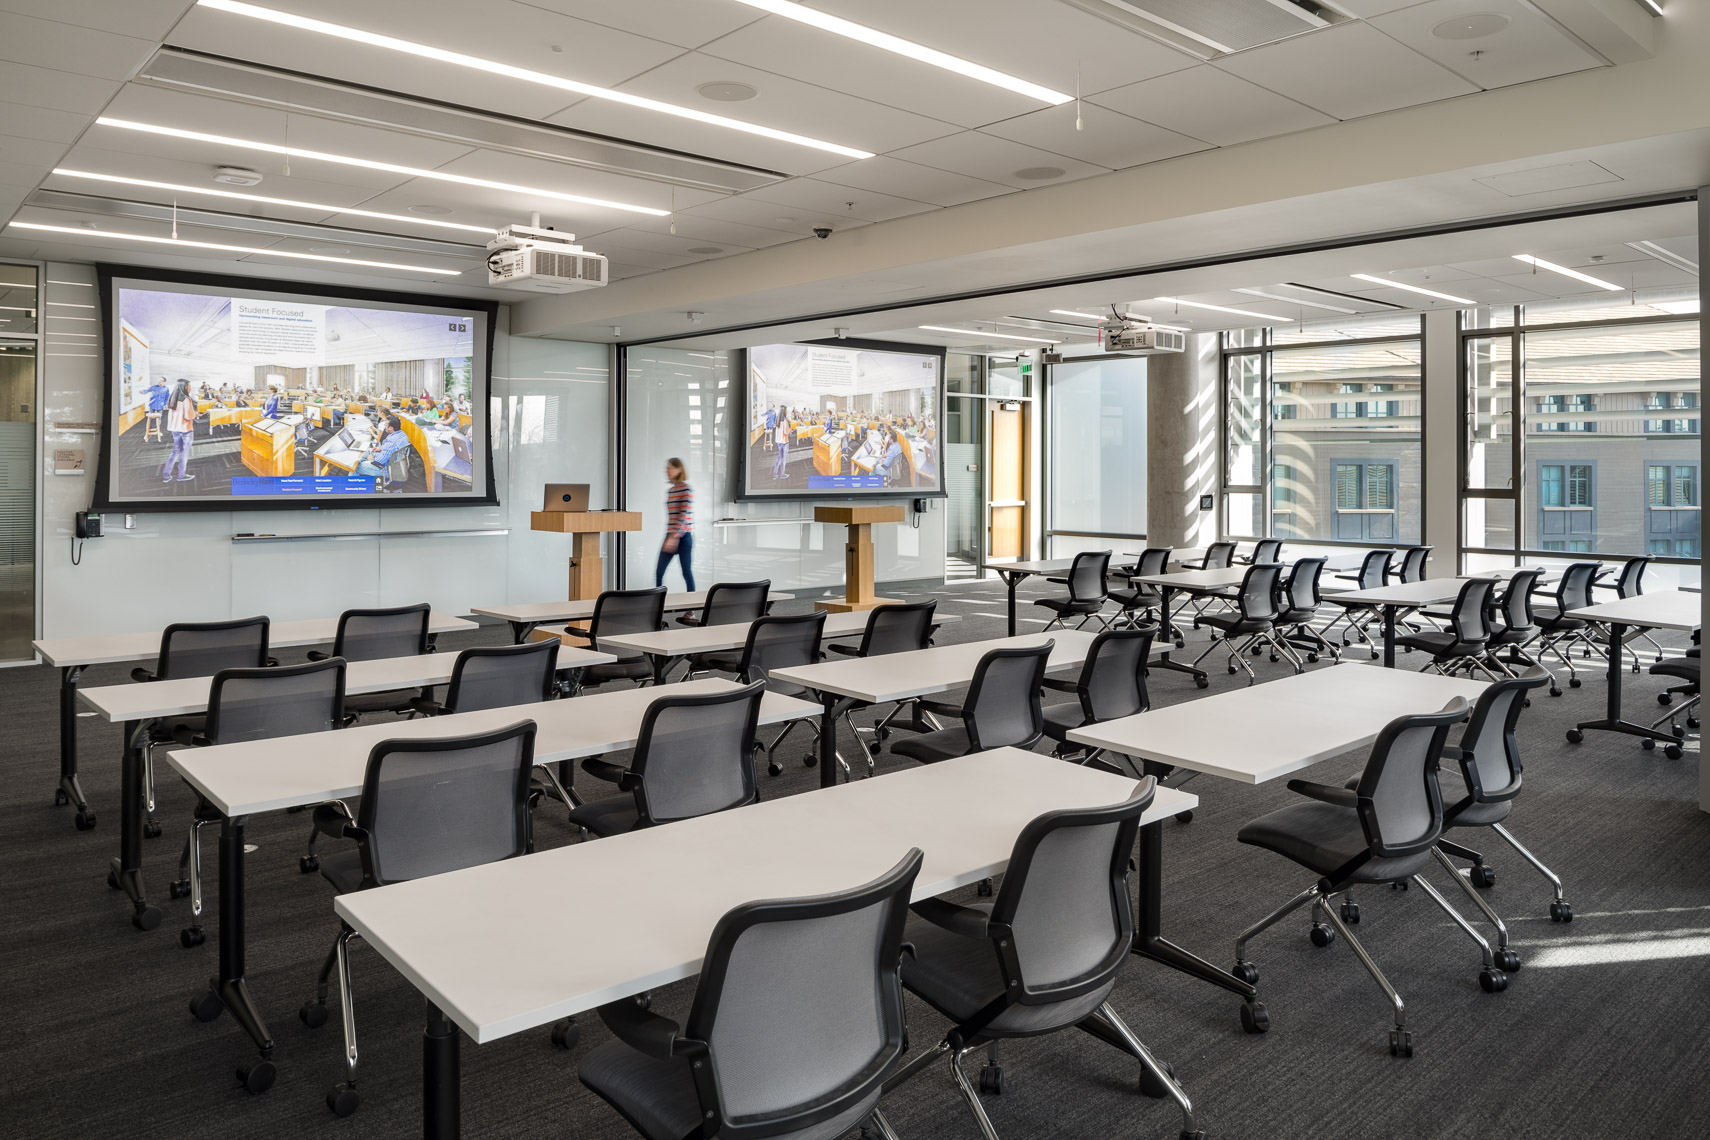 classroom at haas school of business